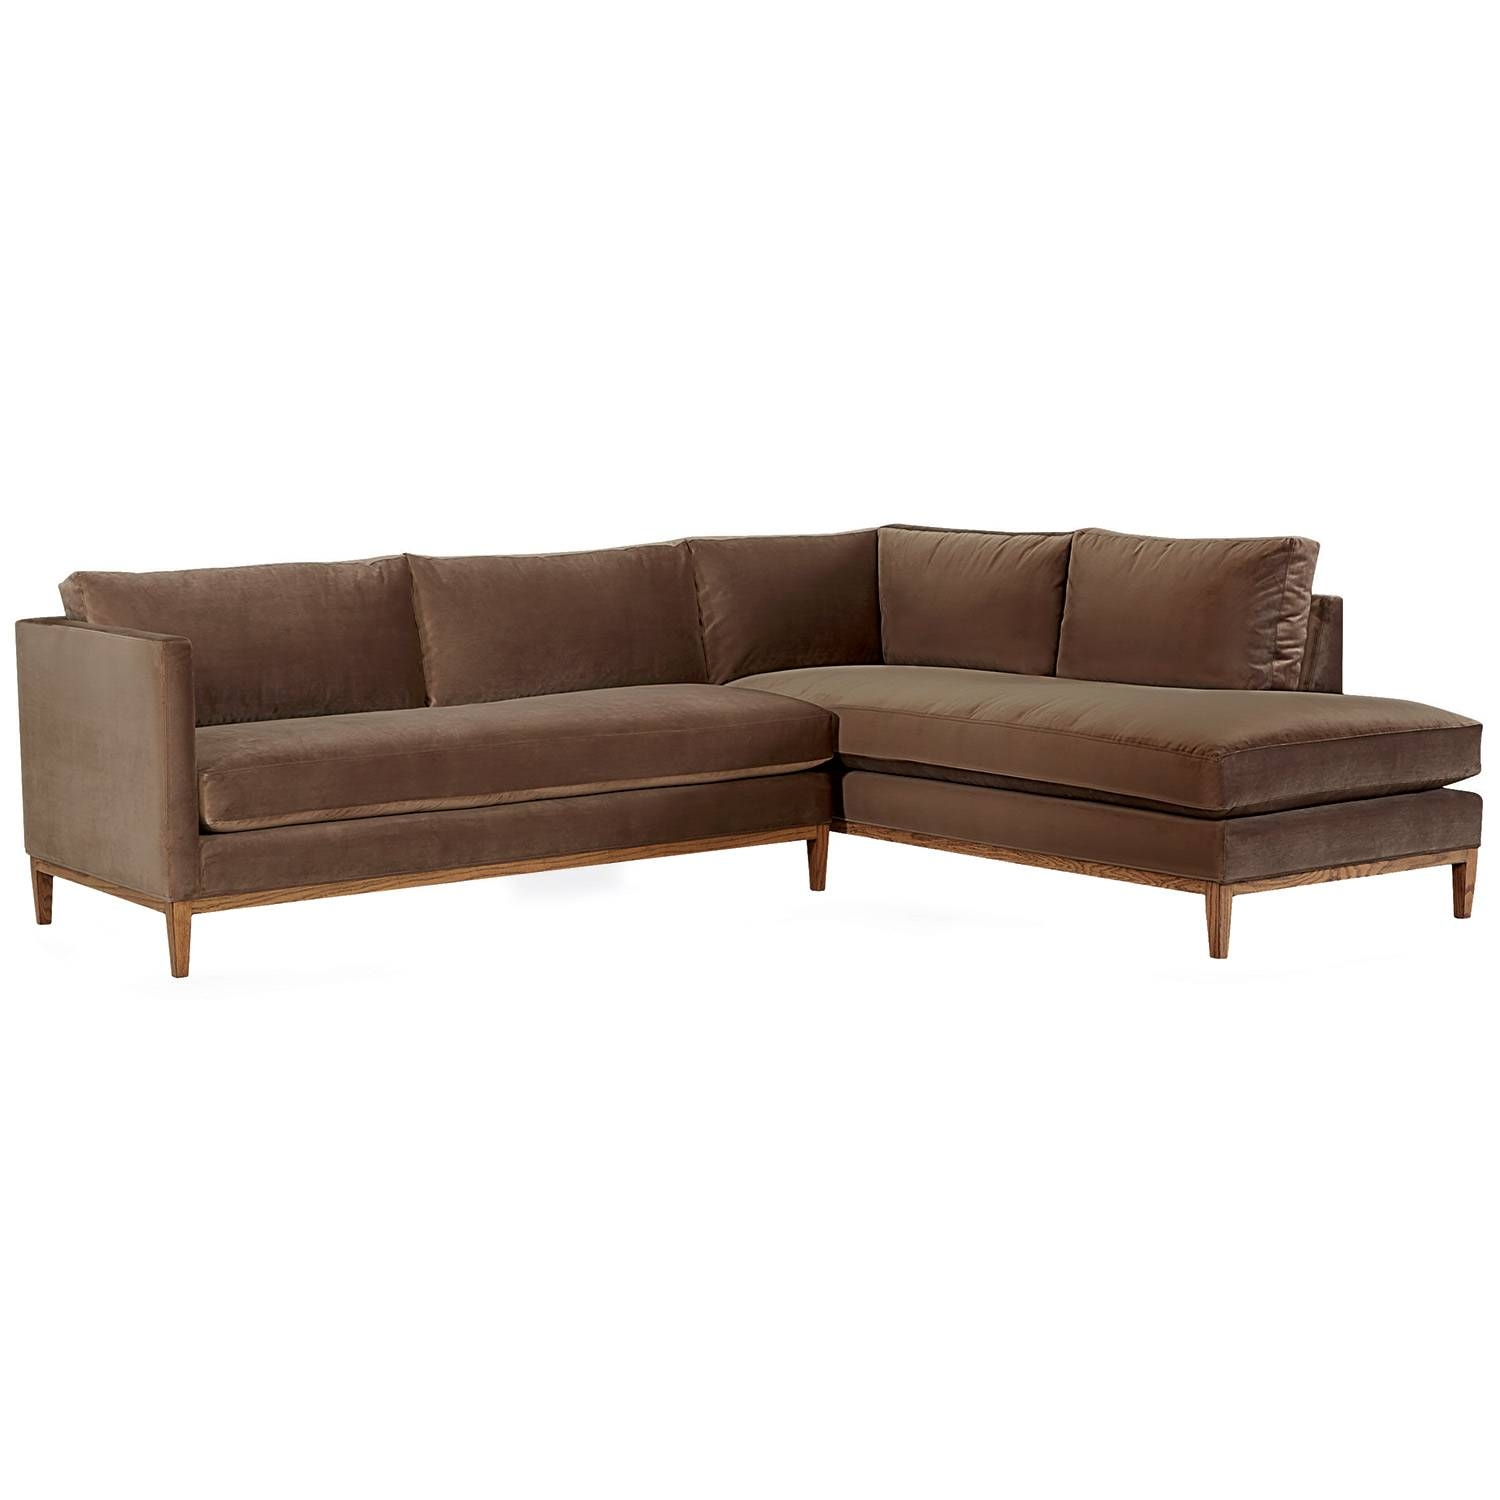 Modern Sofas, Modern Couches, Leather Sofas & Contemporary with Stratford Sofas (Image 16 of 30)